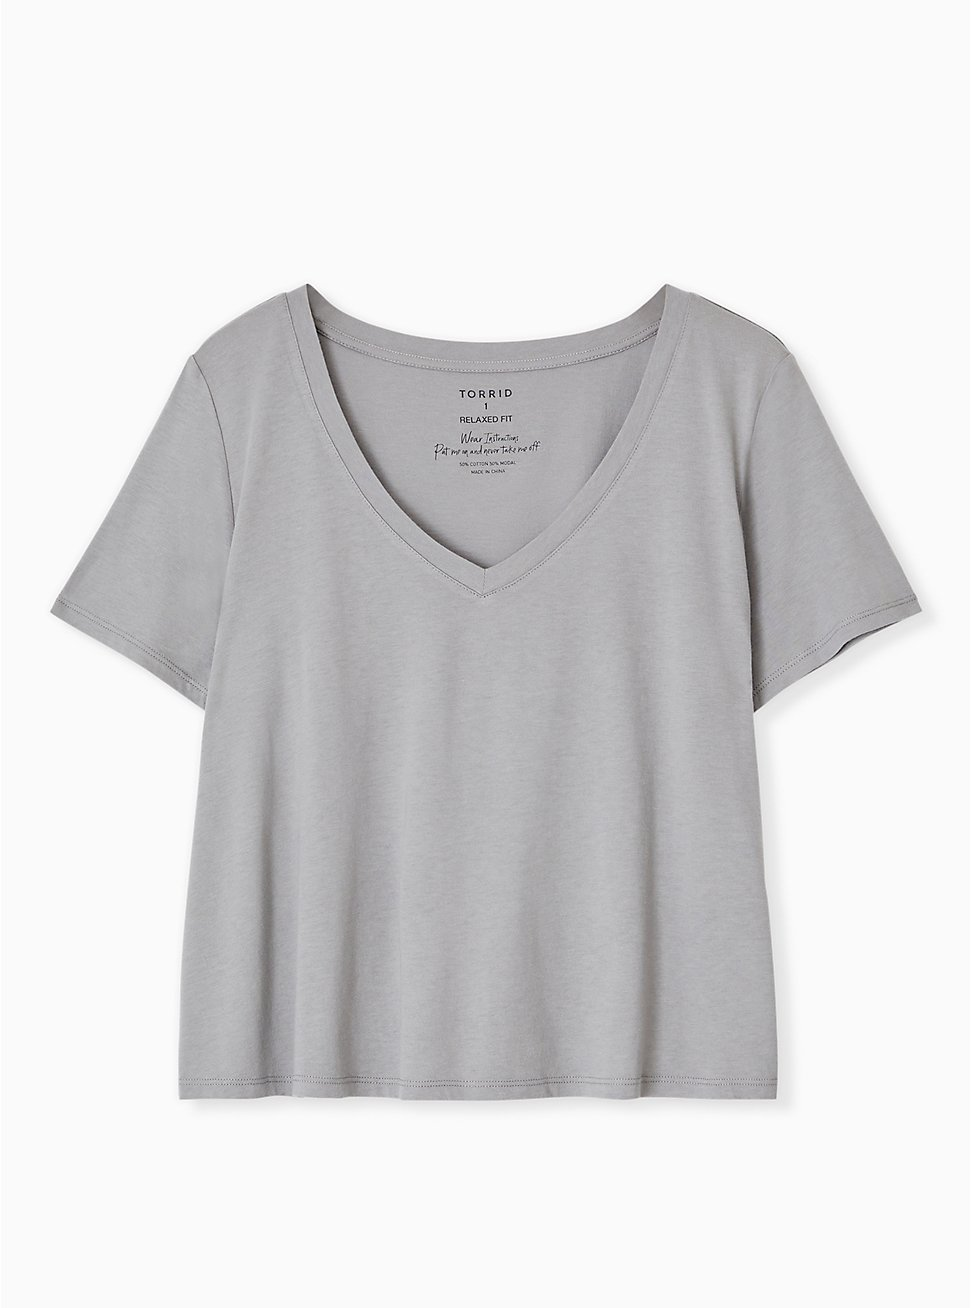 Crop Classic Fit V-Neck Tee - Heritage Cotton Grey, , hi-res